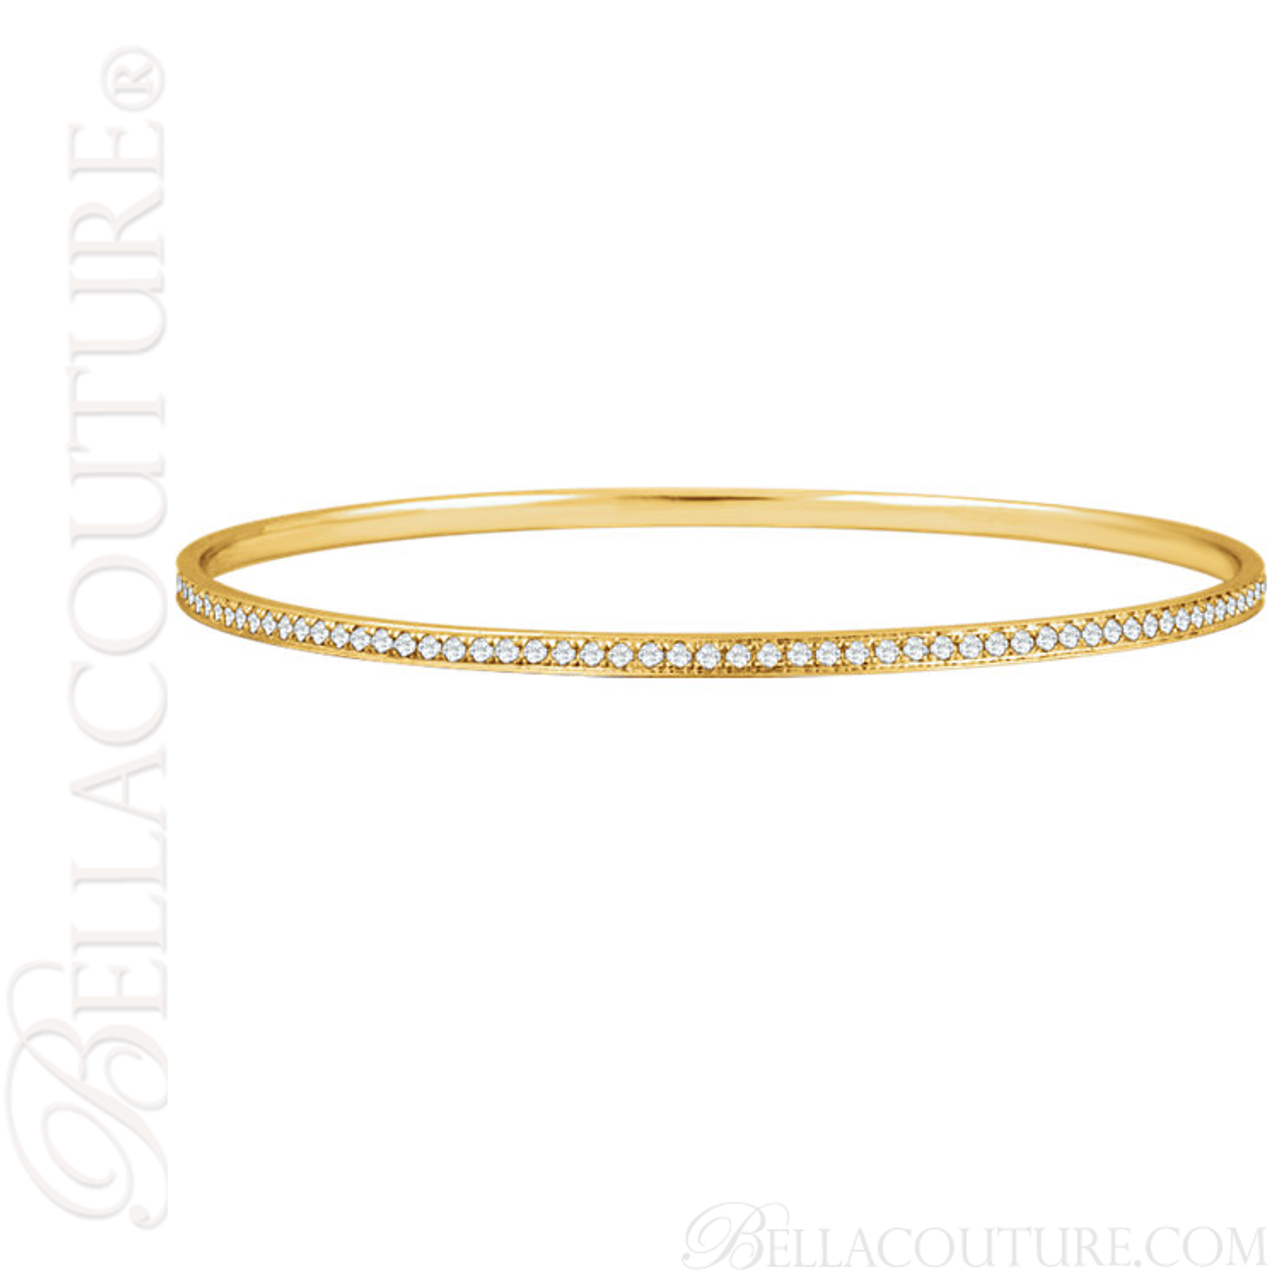 diamond inc personalized cuff bracelet gold initial bangles bangle boutique